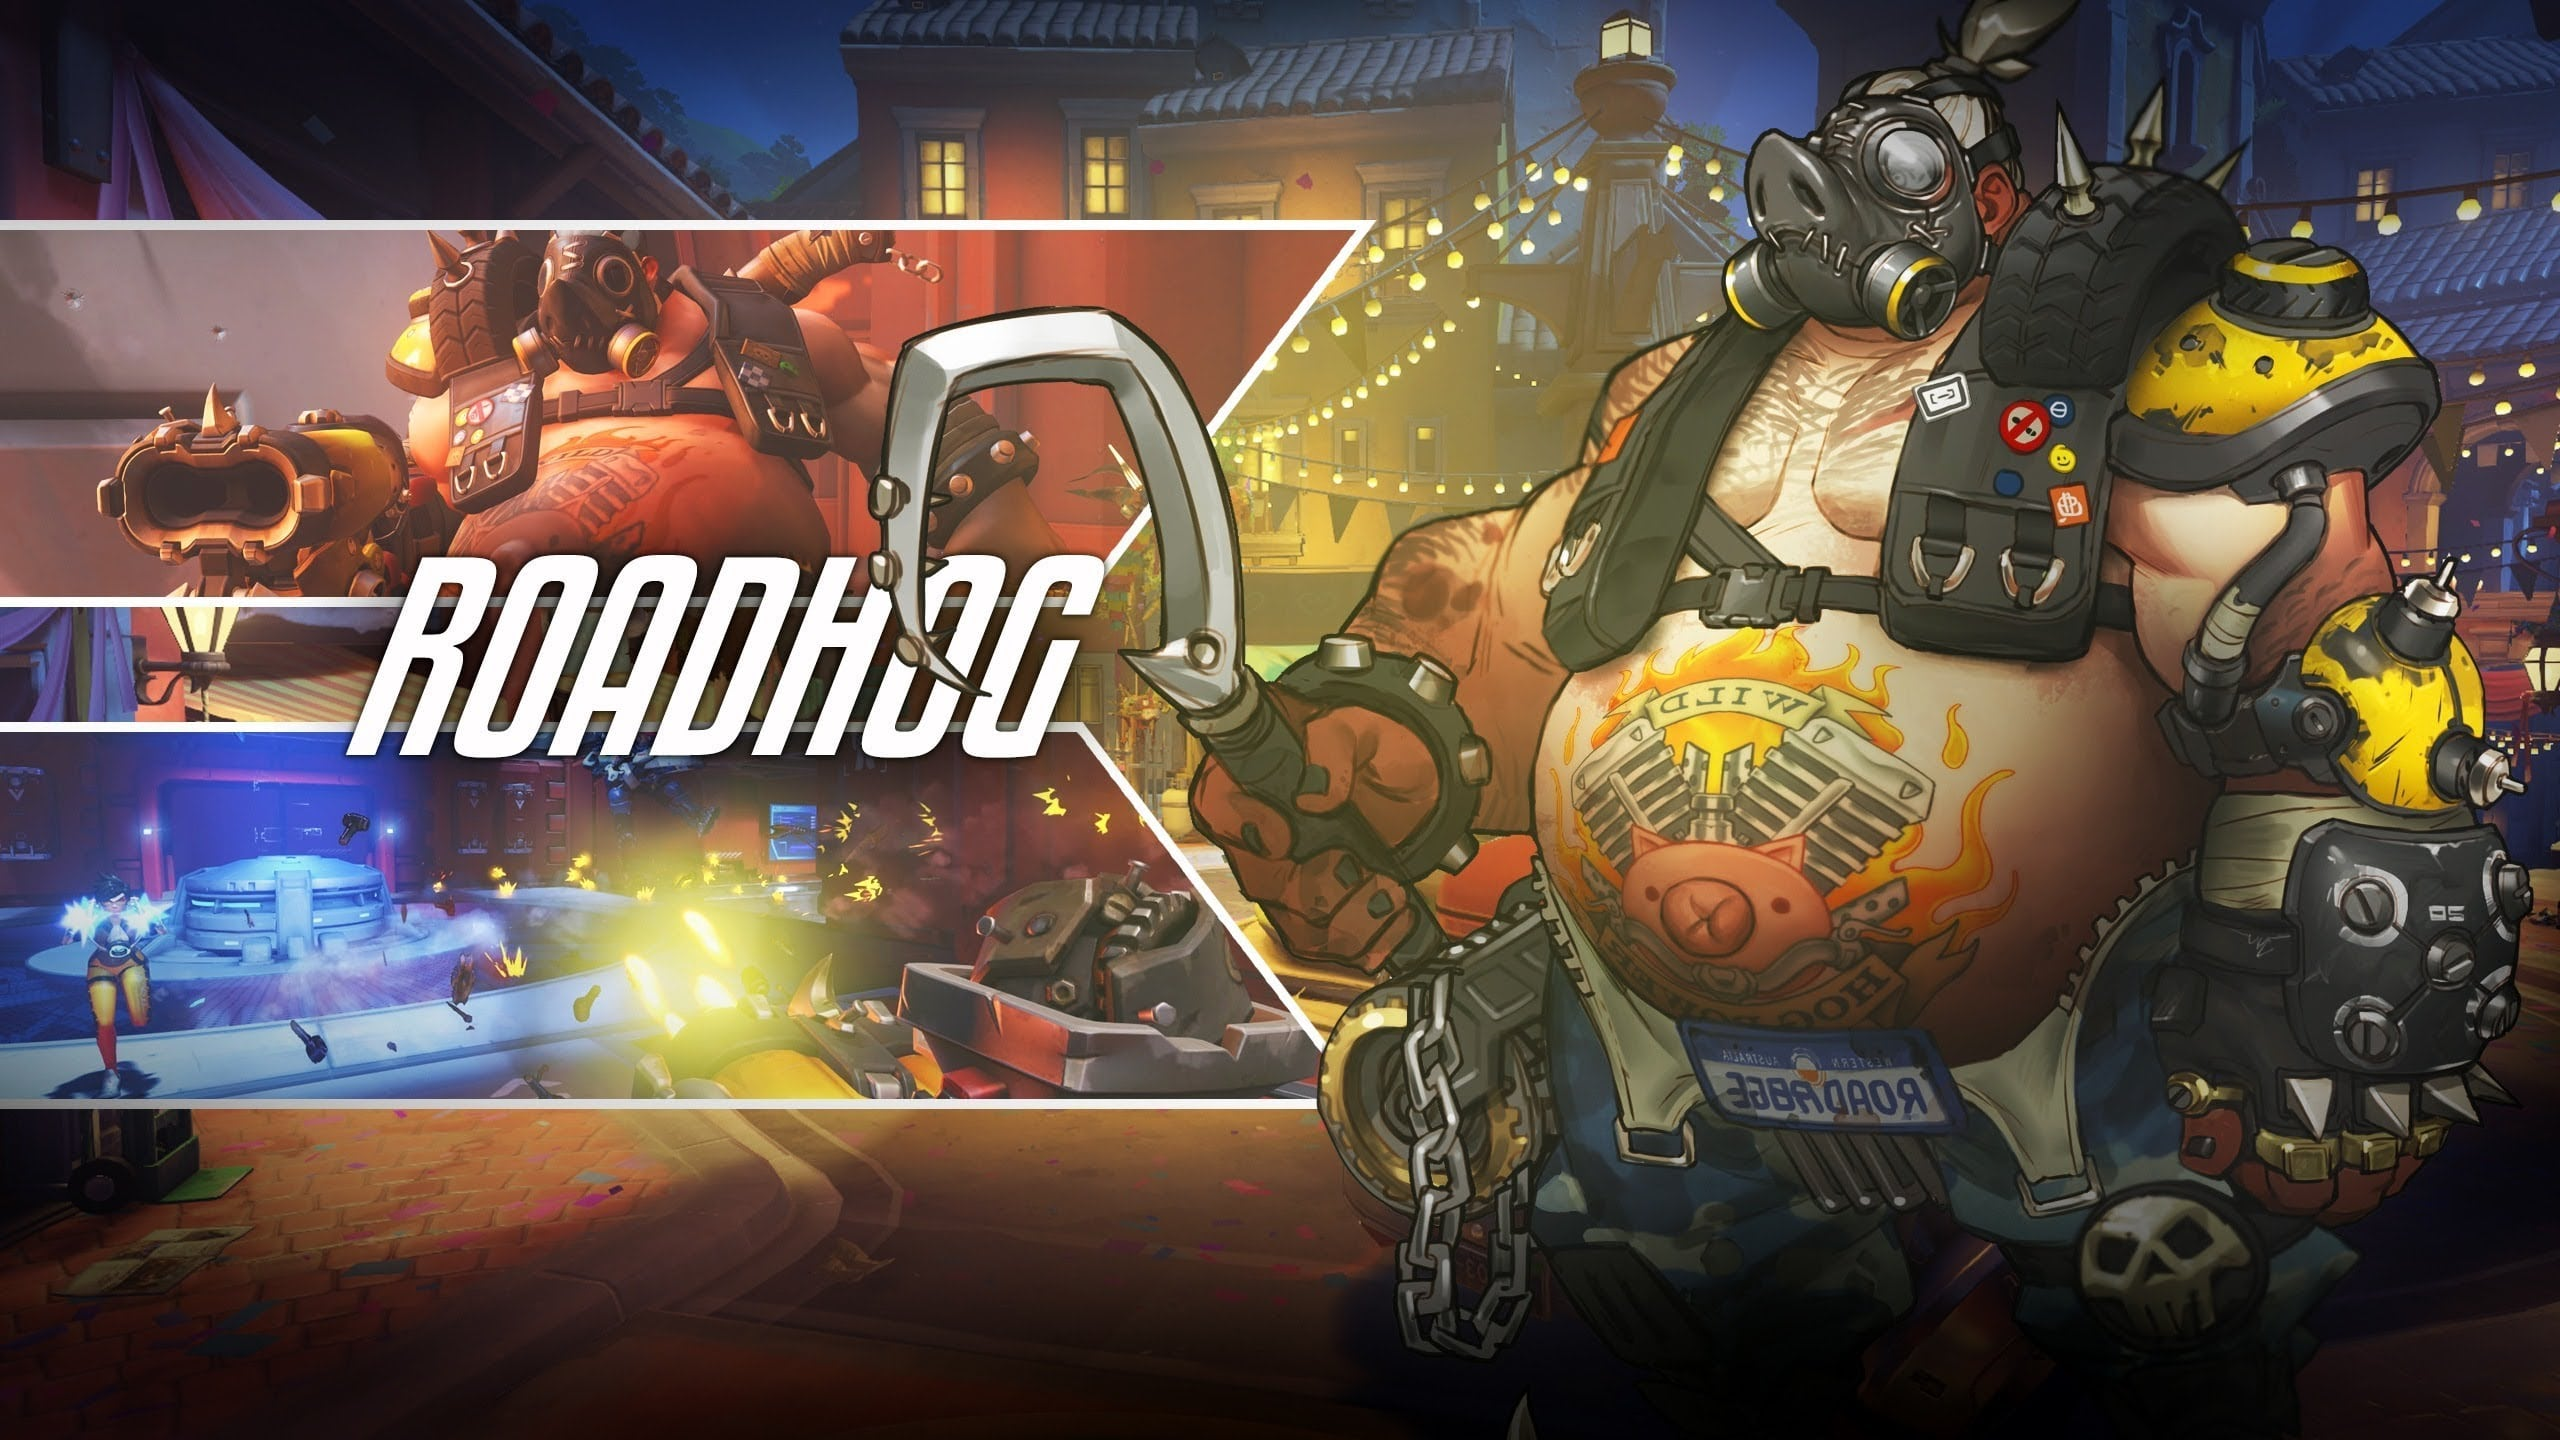 Overwatch : Roadhog Widescreen for desktop